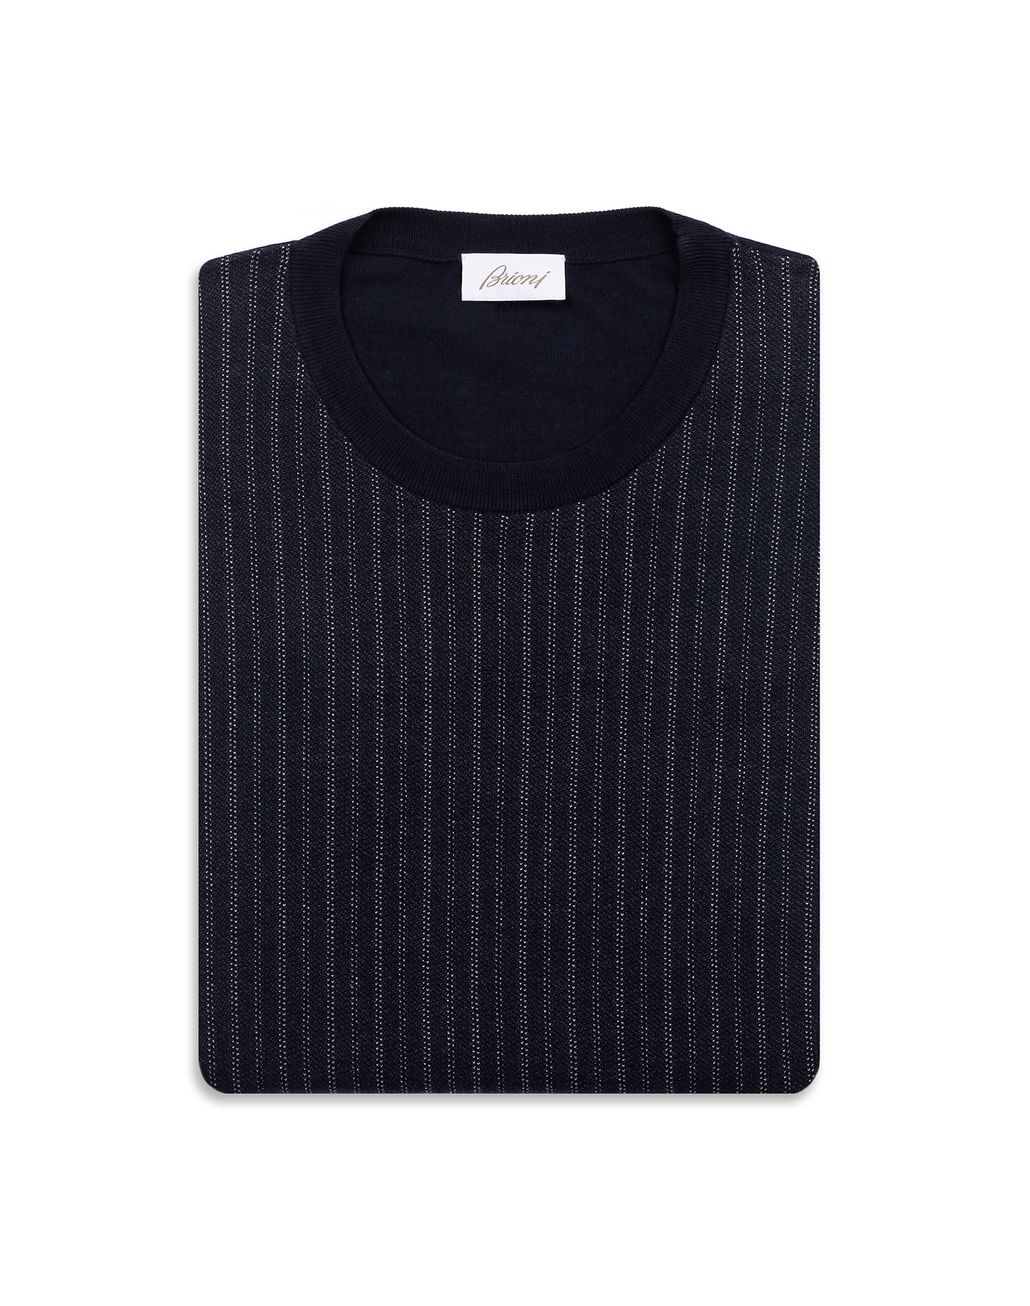 BRIONI Navy Blue Crew Neck Sweater Knitwear Man e